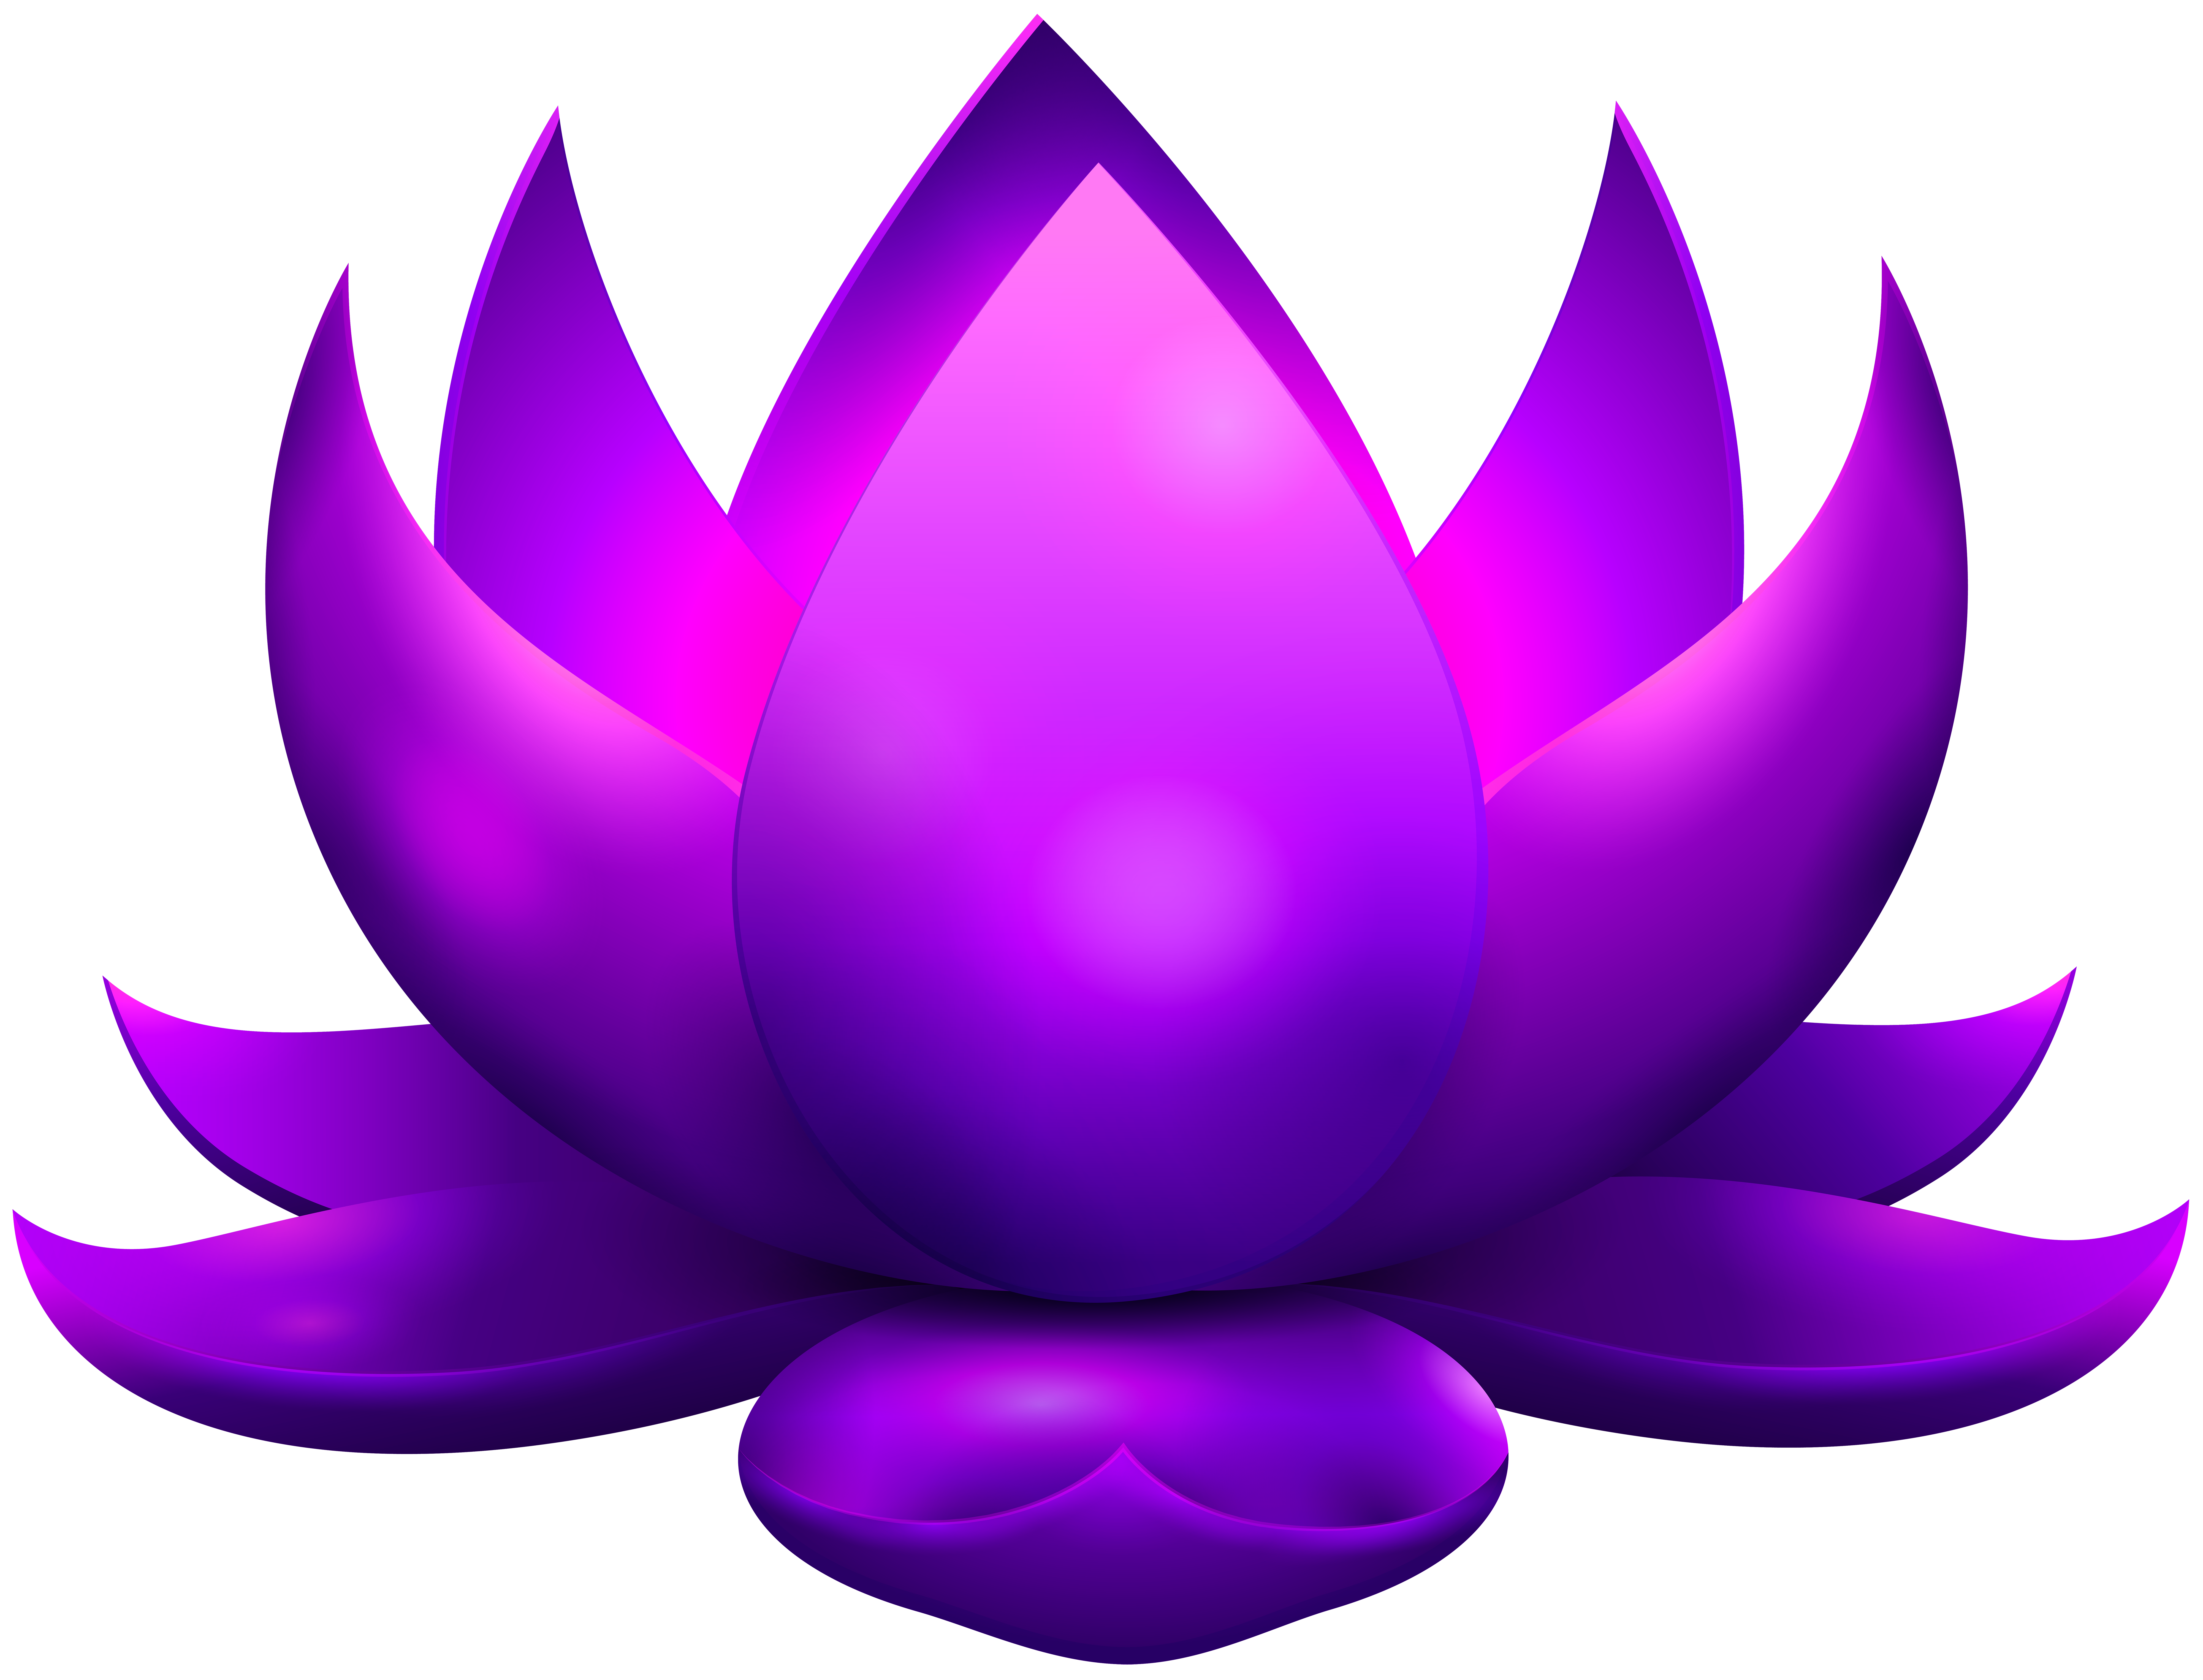 Lotus flower clipart at getdrawings free for personal use 8000x6101 clip art clip art lotus mightylinksfo